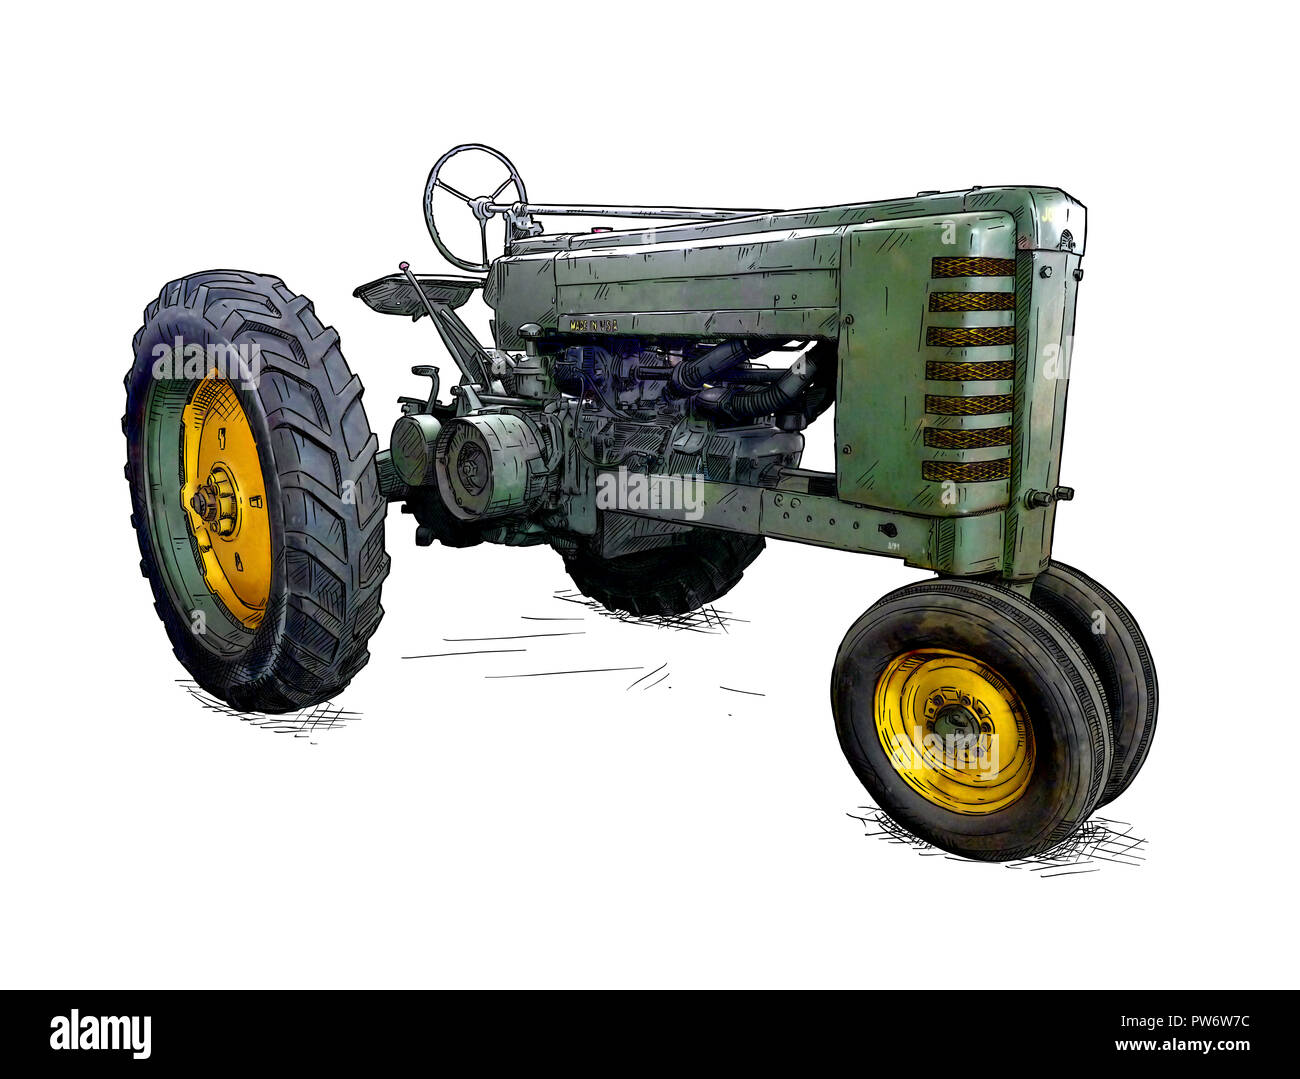 Cartoon or Comic Style Illustration of Old Green Tractor - Stock Image